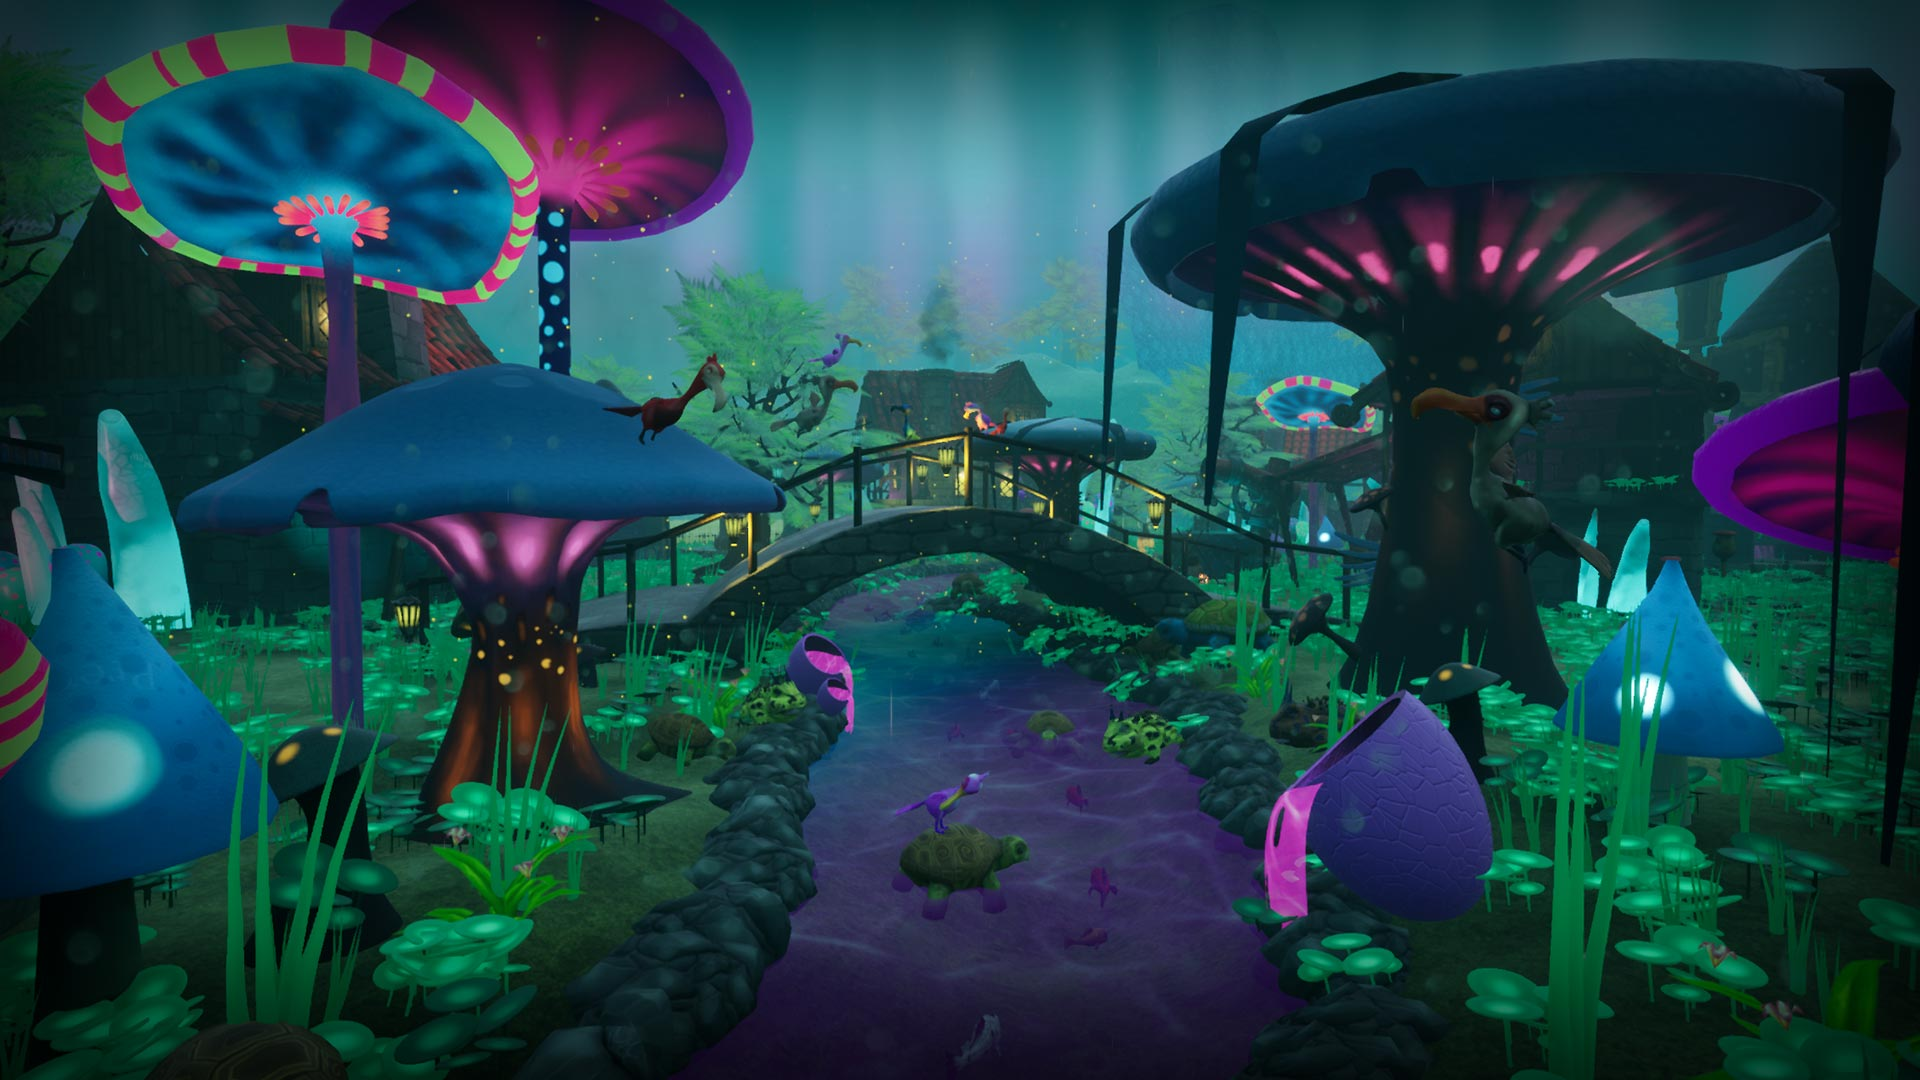 3D Environments for 3D Game Art Outsourcing and External Game Development